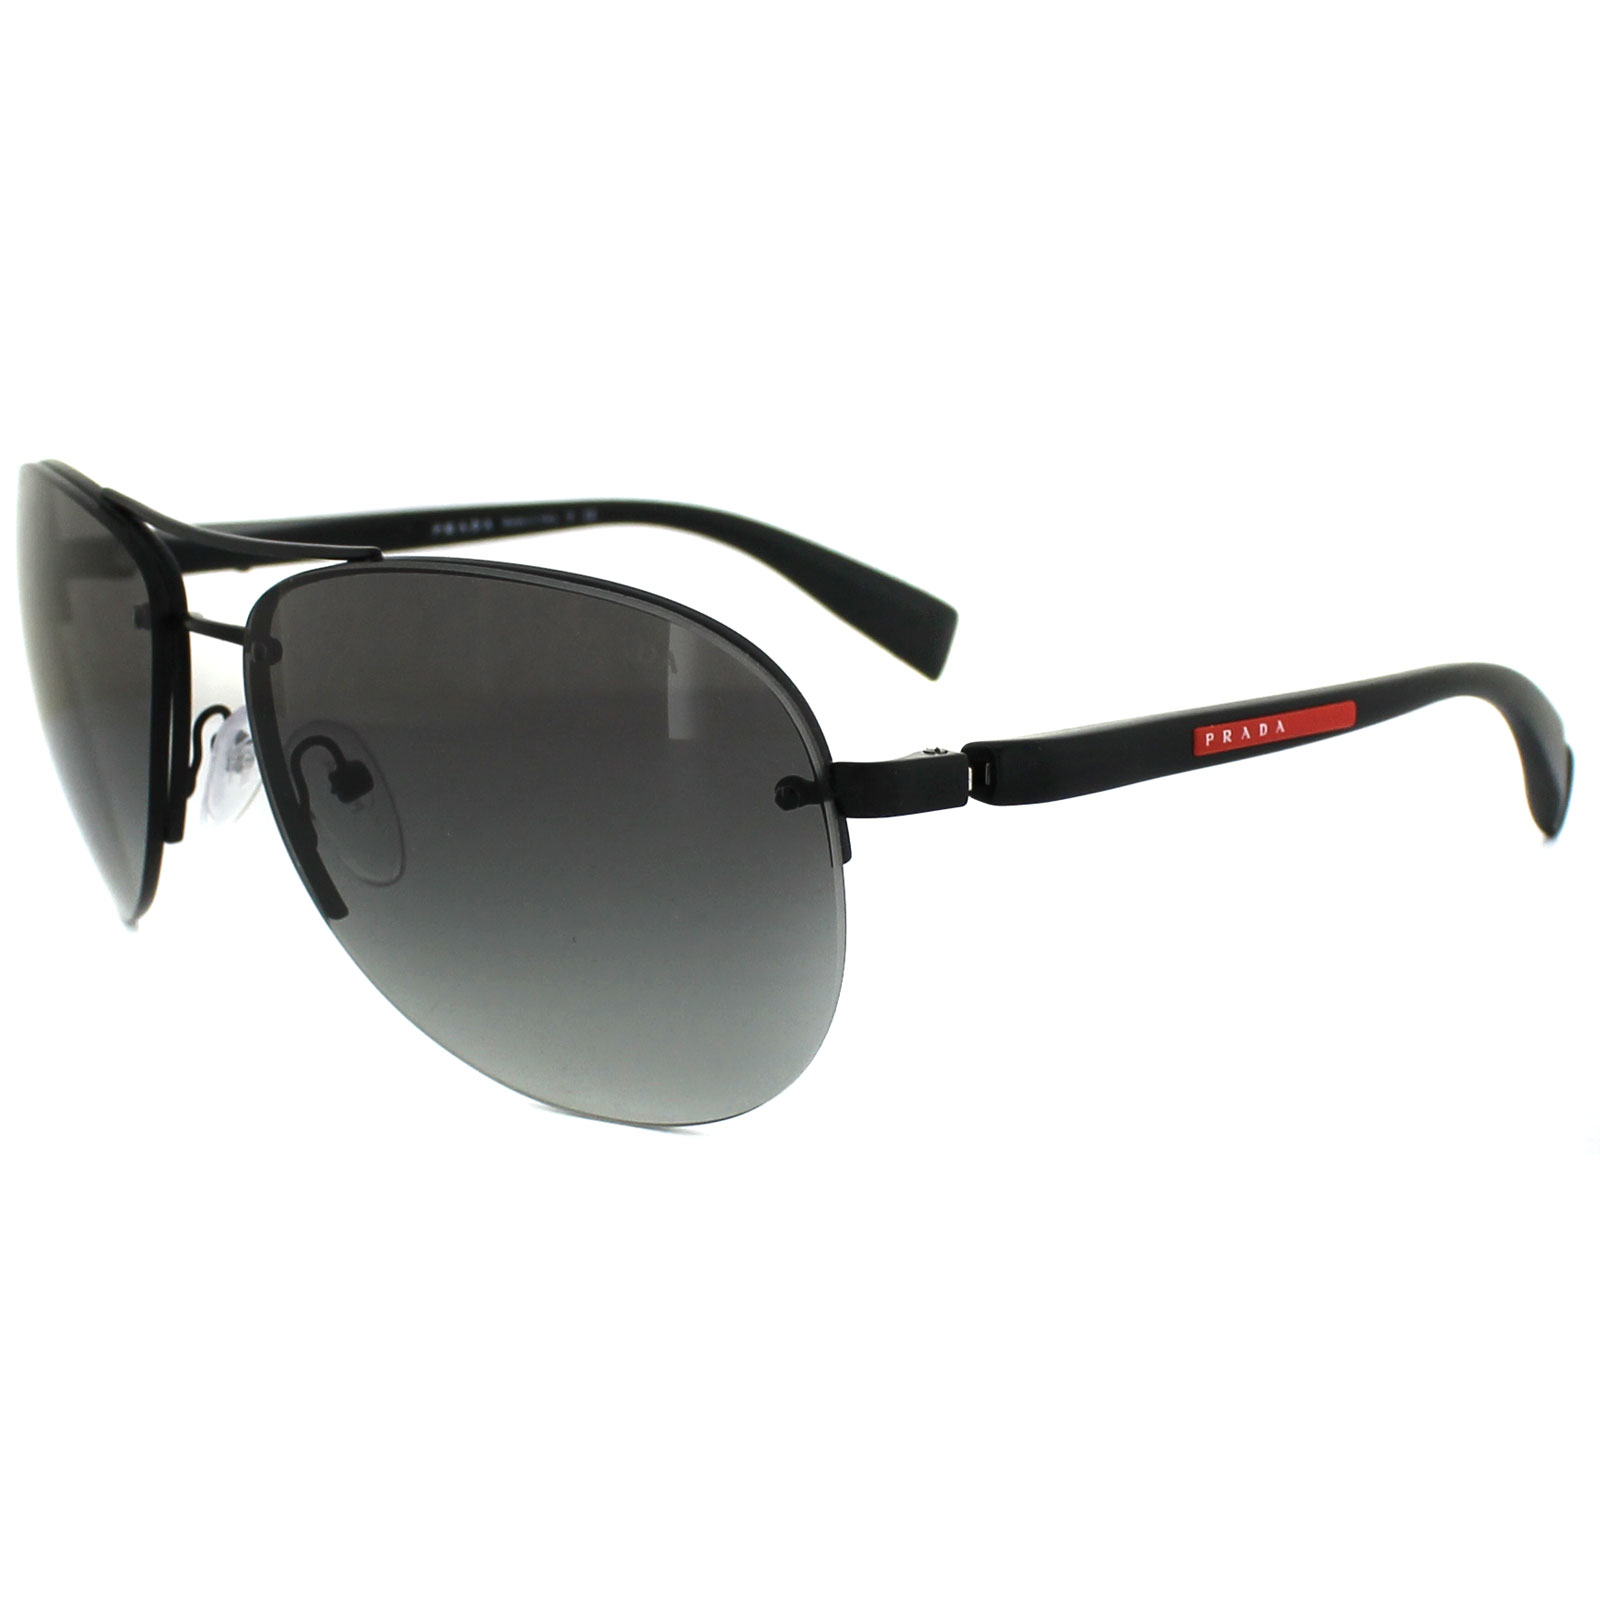 c8a9121202f0 Prada Sport Shield Sunglasses